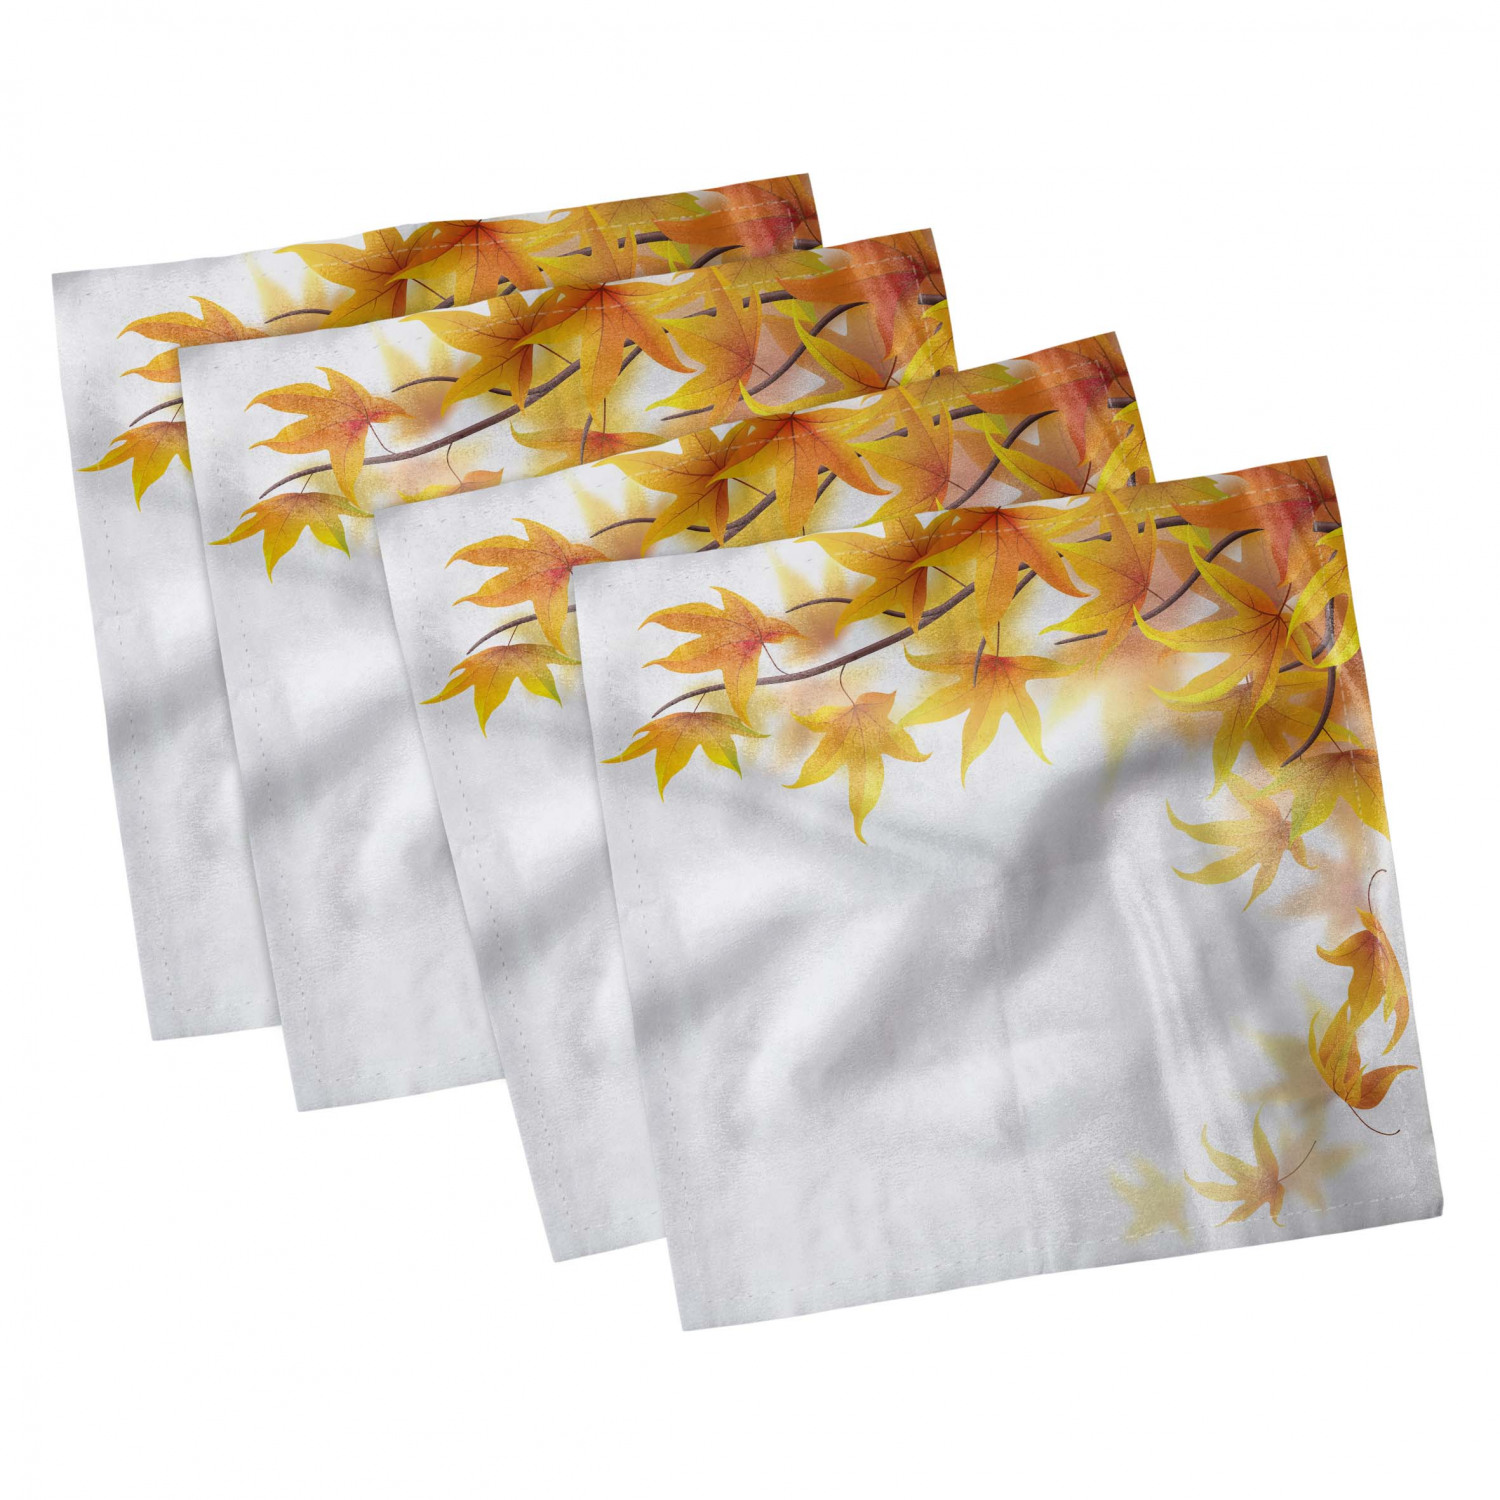 thumbnail 75 - Ambesonne-Autumn-Fall-Decorative-Satin-Napkins-Set-of-4-Party-Dinner-Fabric